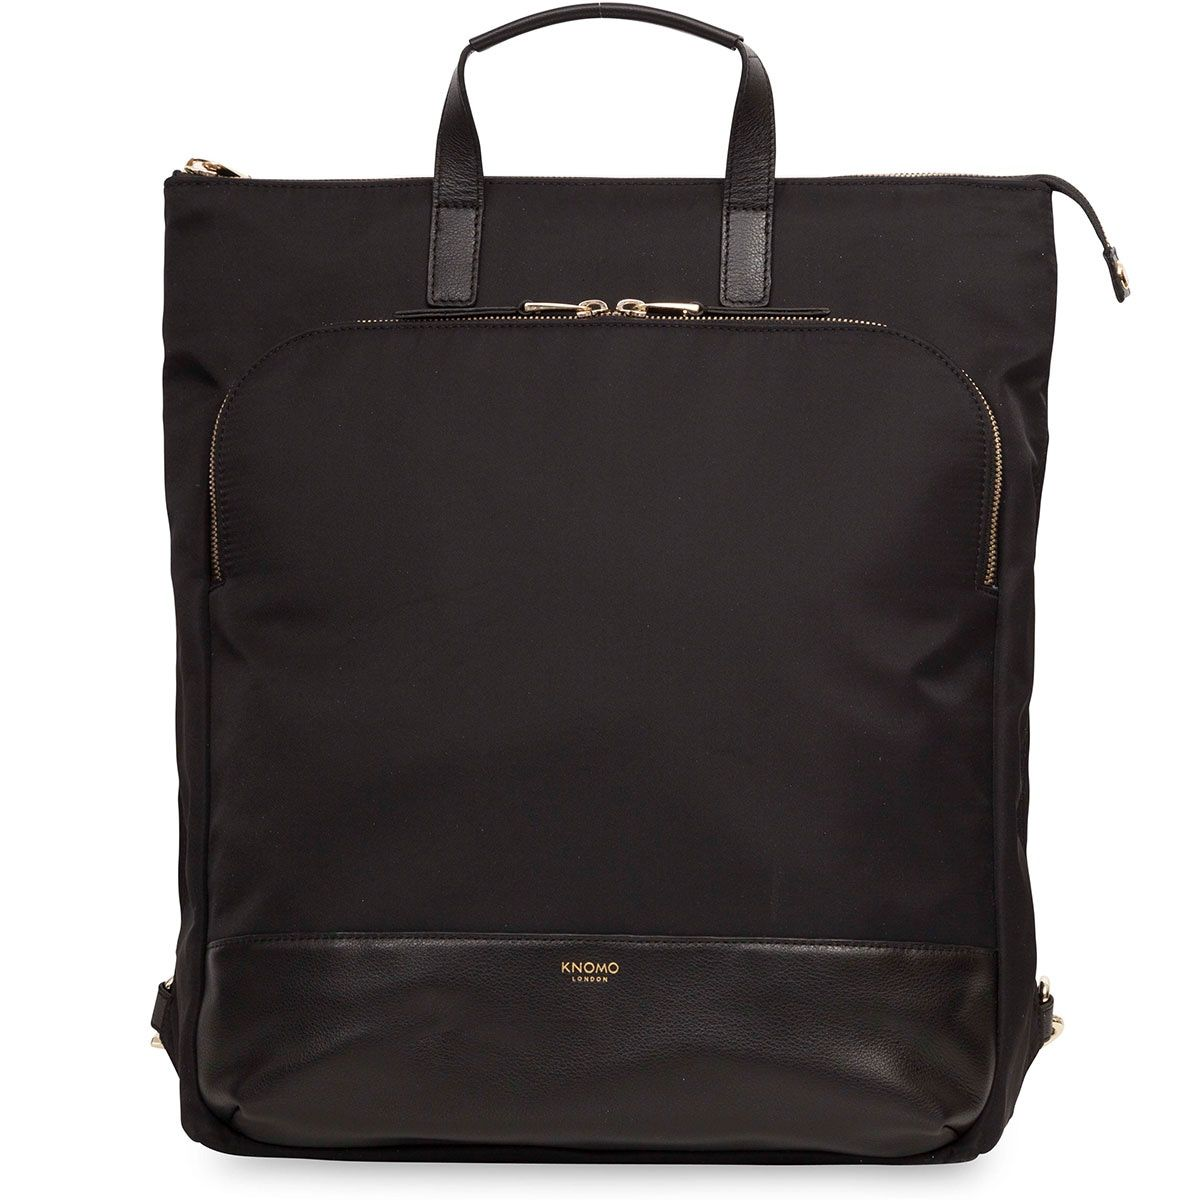 Knomo Harewood Tote Backpack Black 15 inch